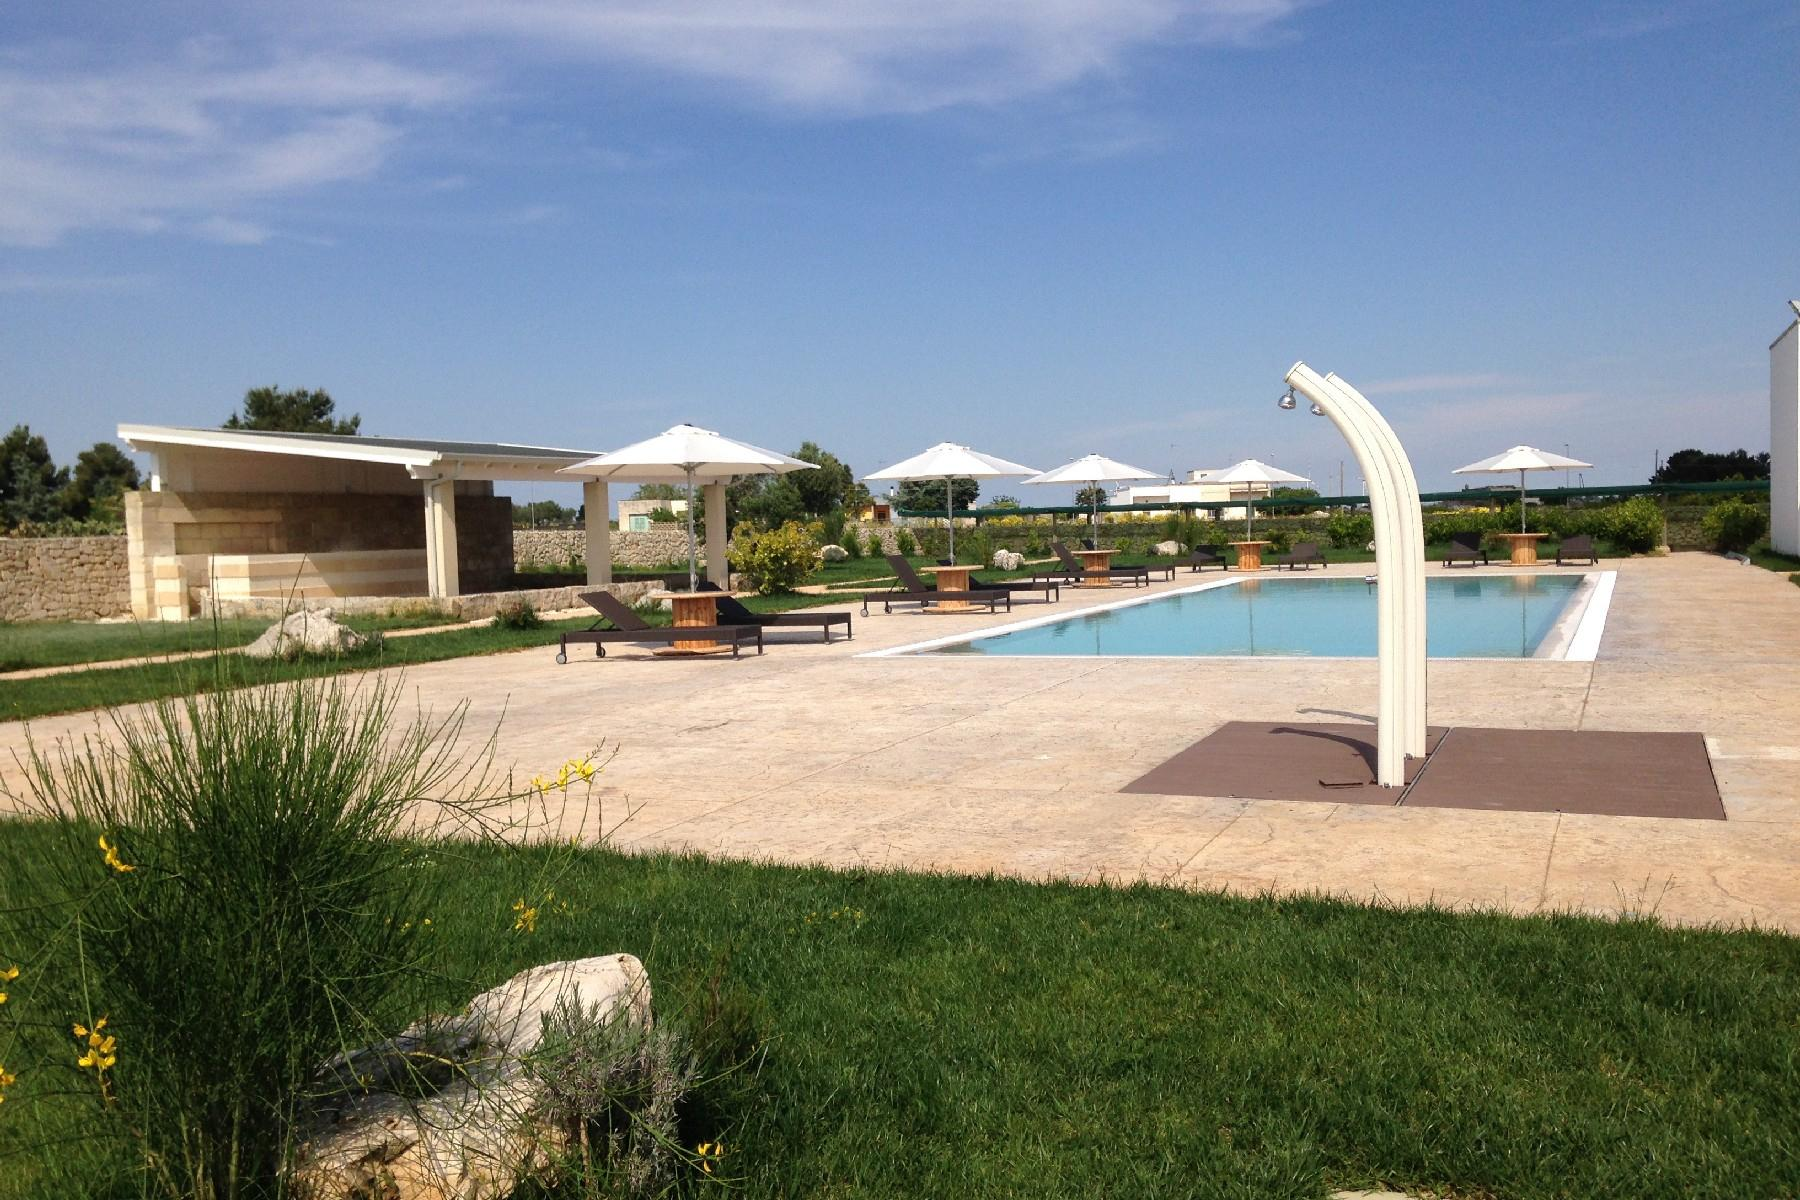 Perfectly renovated farmhouse a few kilometers from Otranto - 9